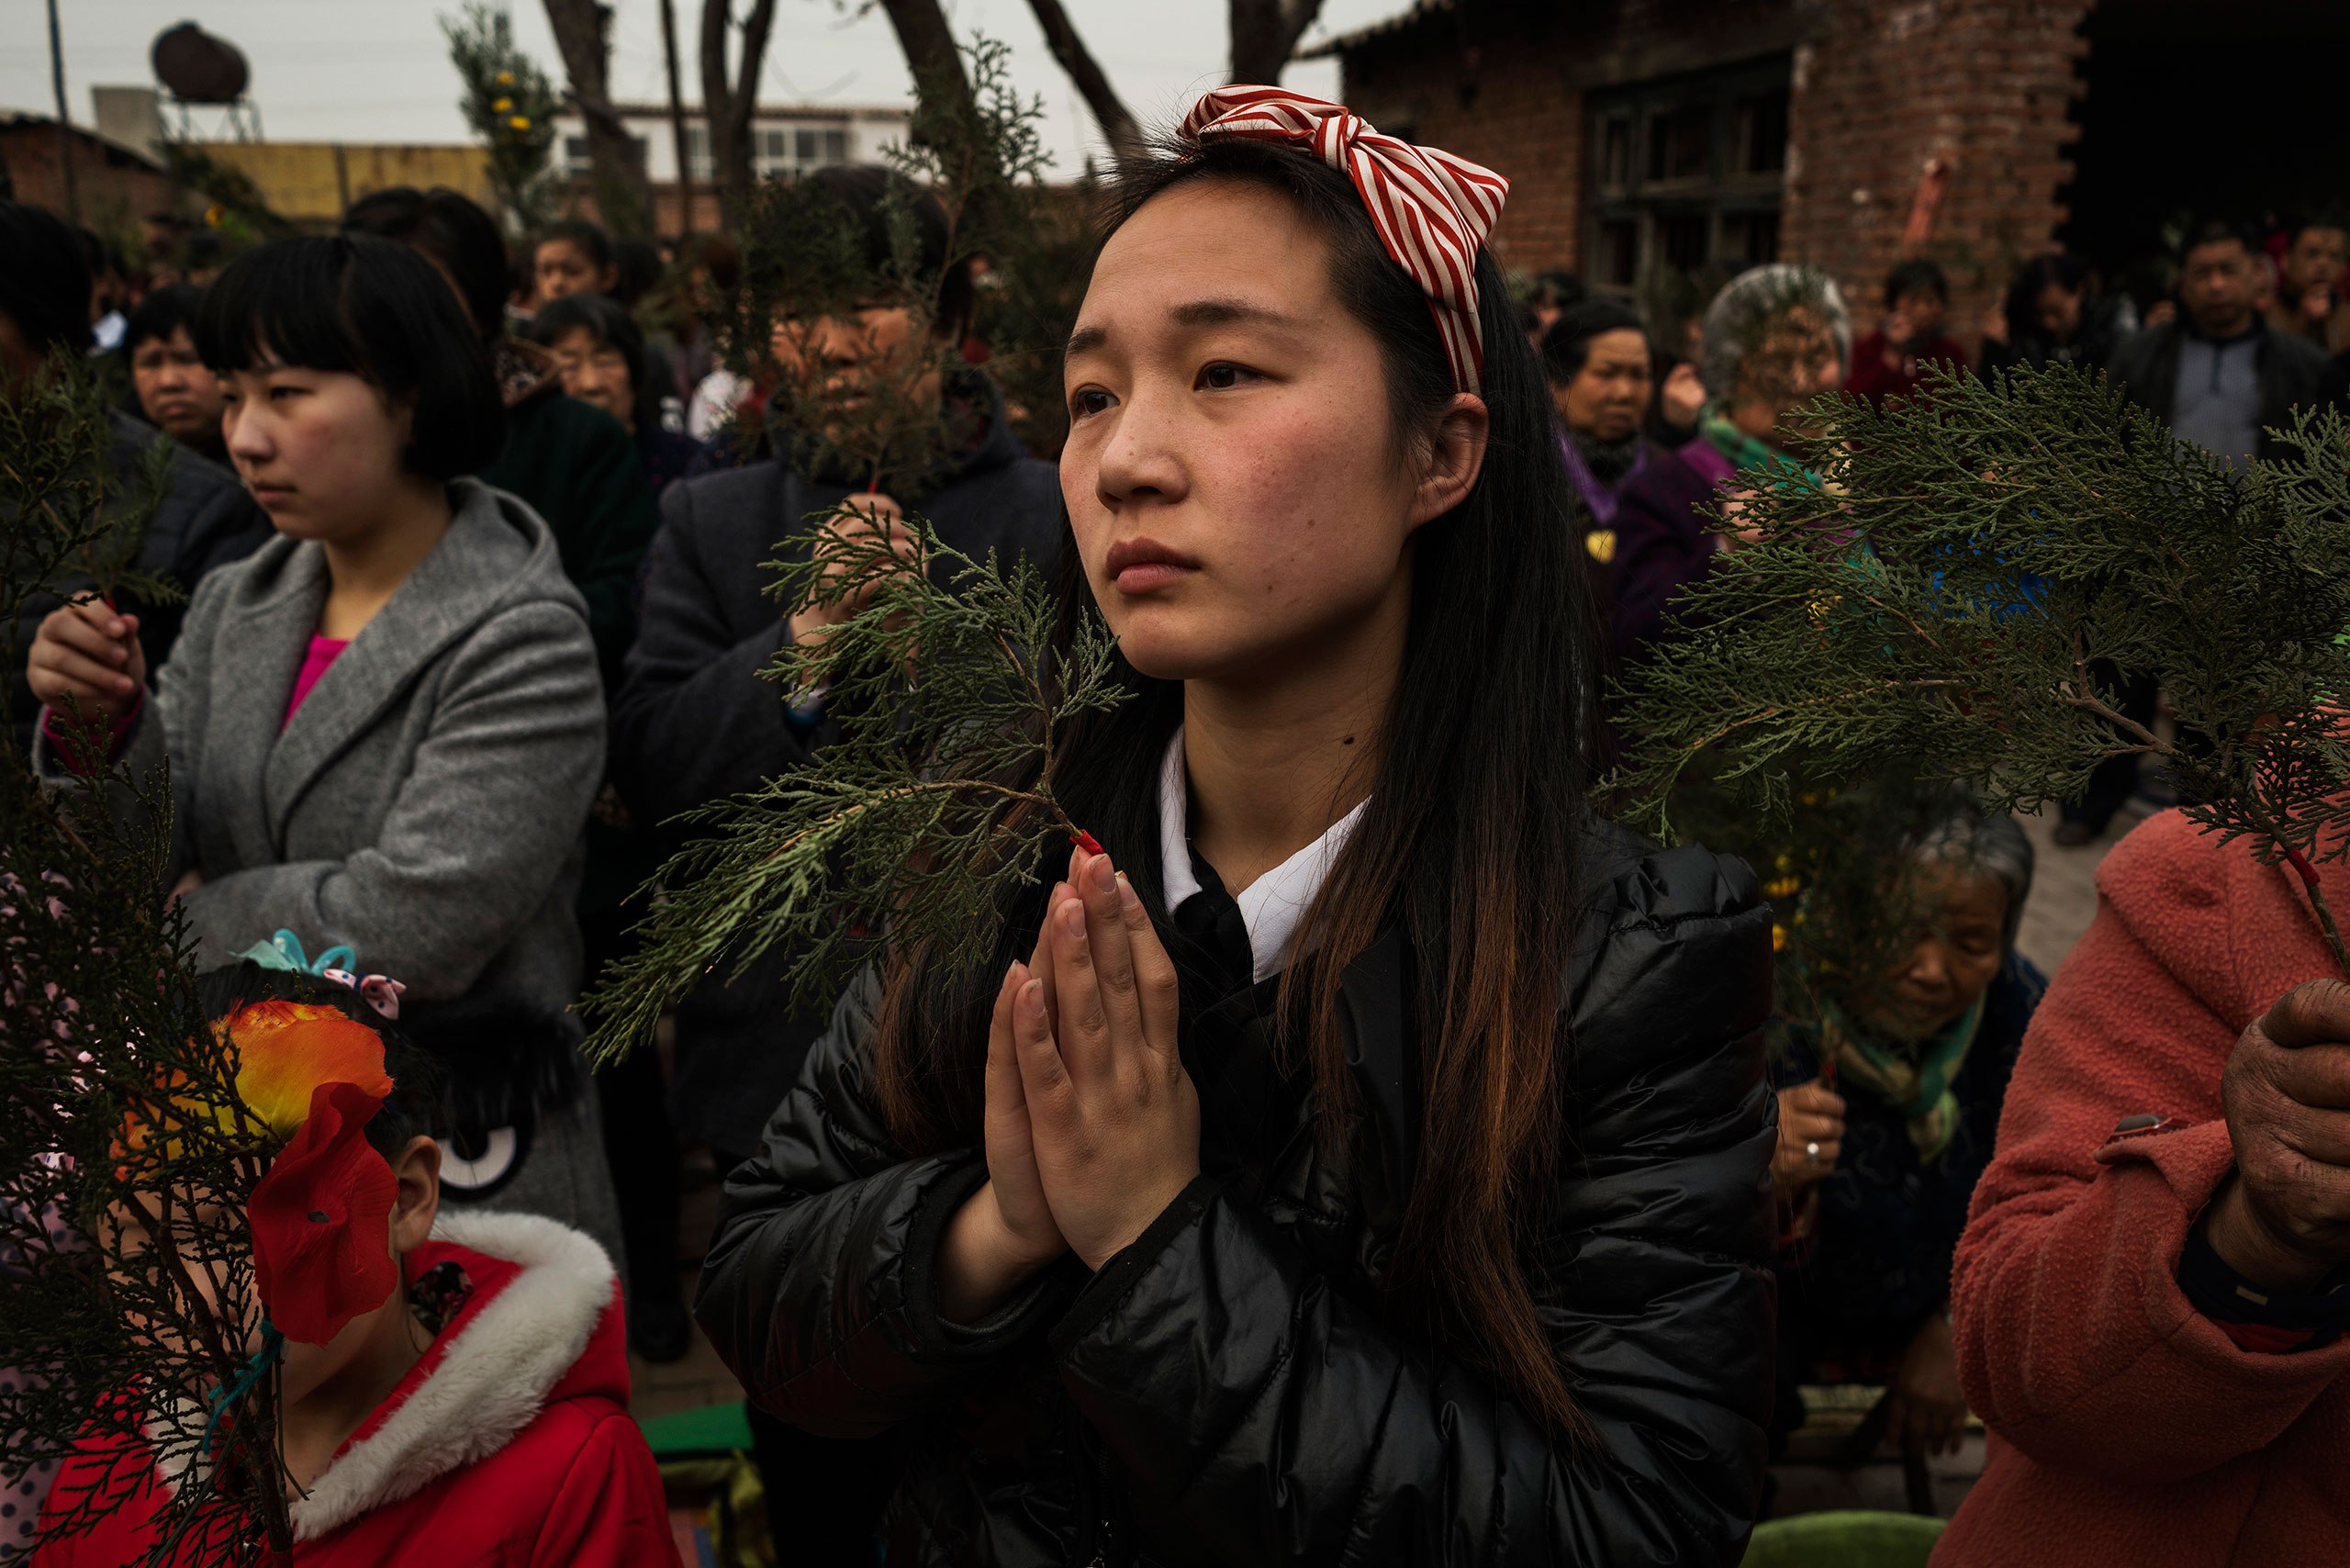 Parishioners clutch fir branches in place of palm fonds as they pray at an underground Palm Sunday service run by  dissident Catholic Priest Dong Baolu in the yard of a house in Youtong village, Shijiazhuang, China, March 20, 2016.